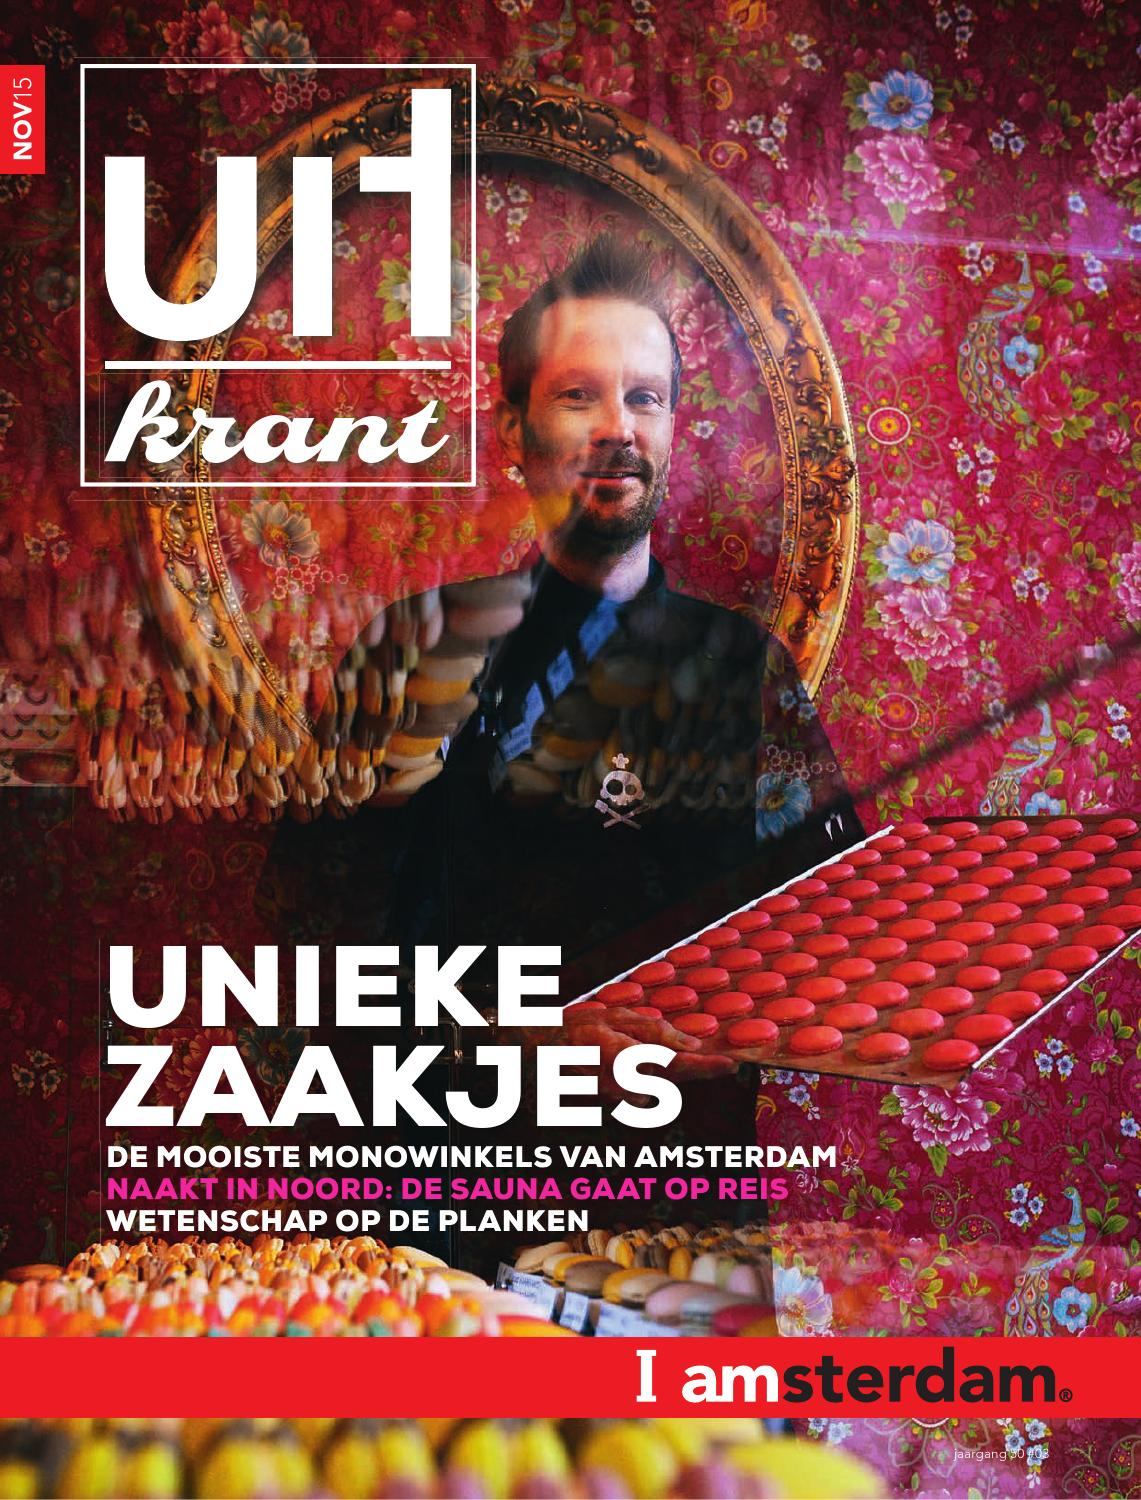 Uitkrant oktober 2015 by amsterdam marketing   issuu